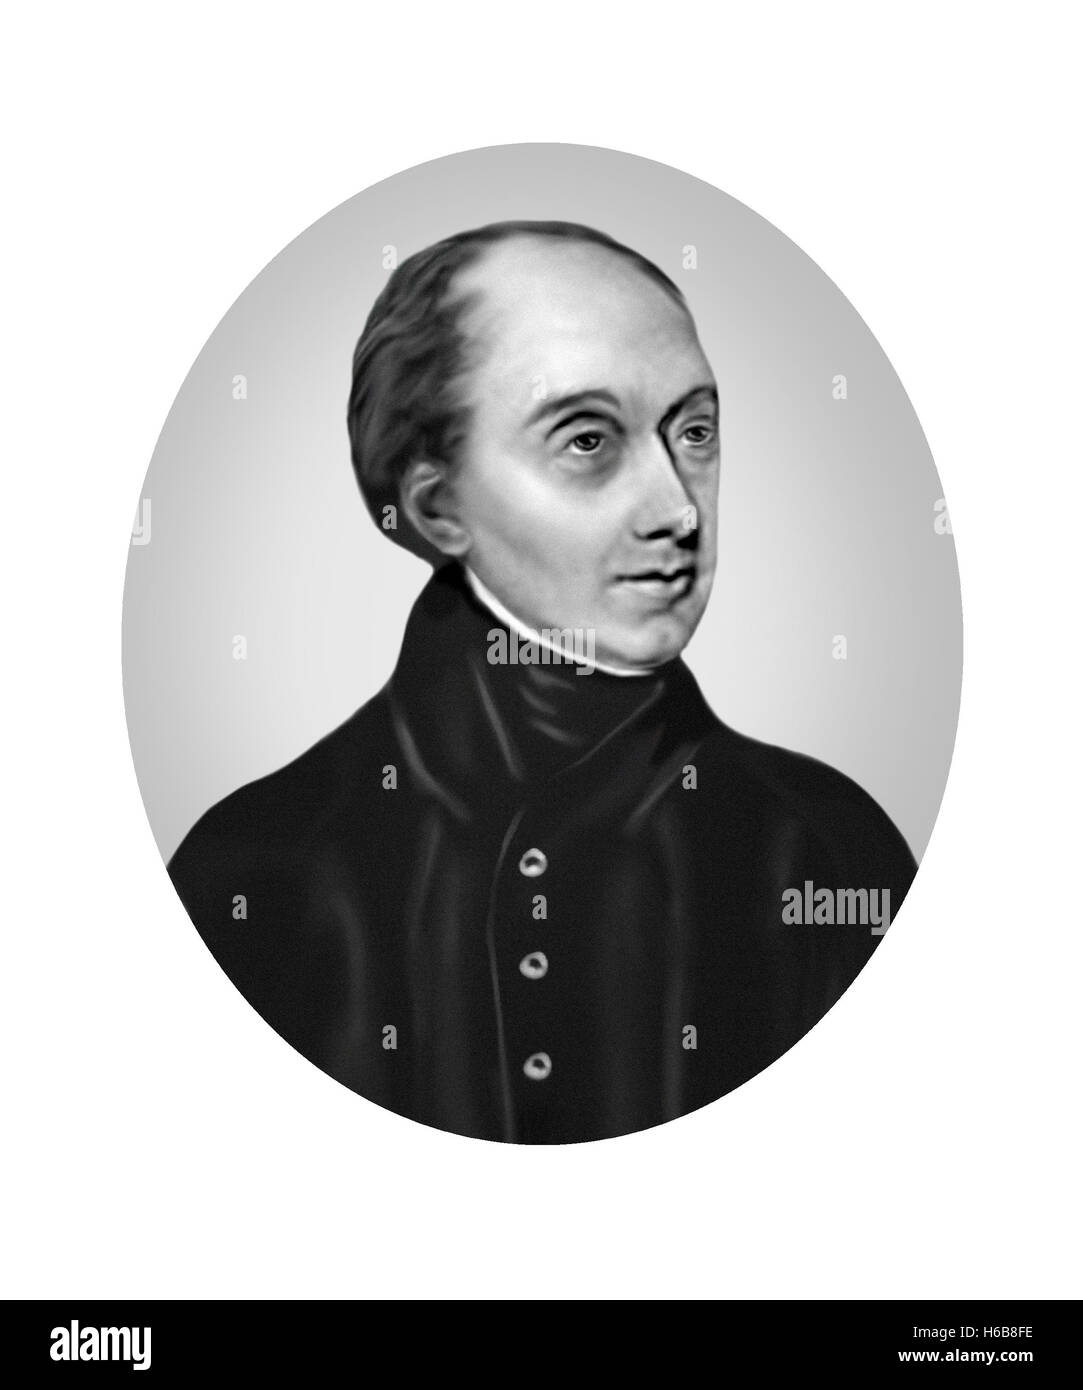 Ralph Darling, 1772-1858, Governor of New South Wales, Australia - Stock Image